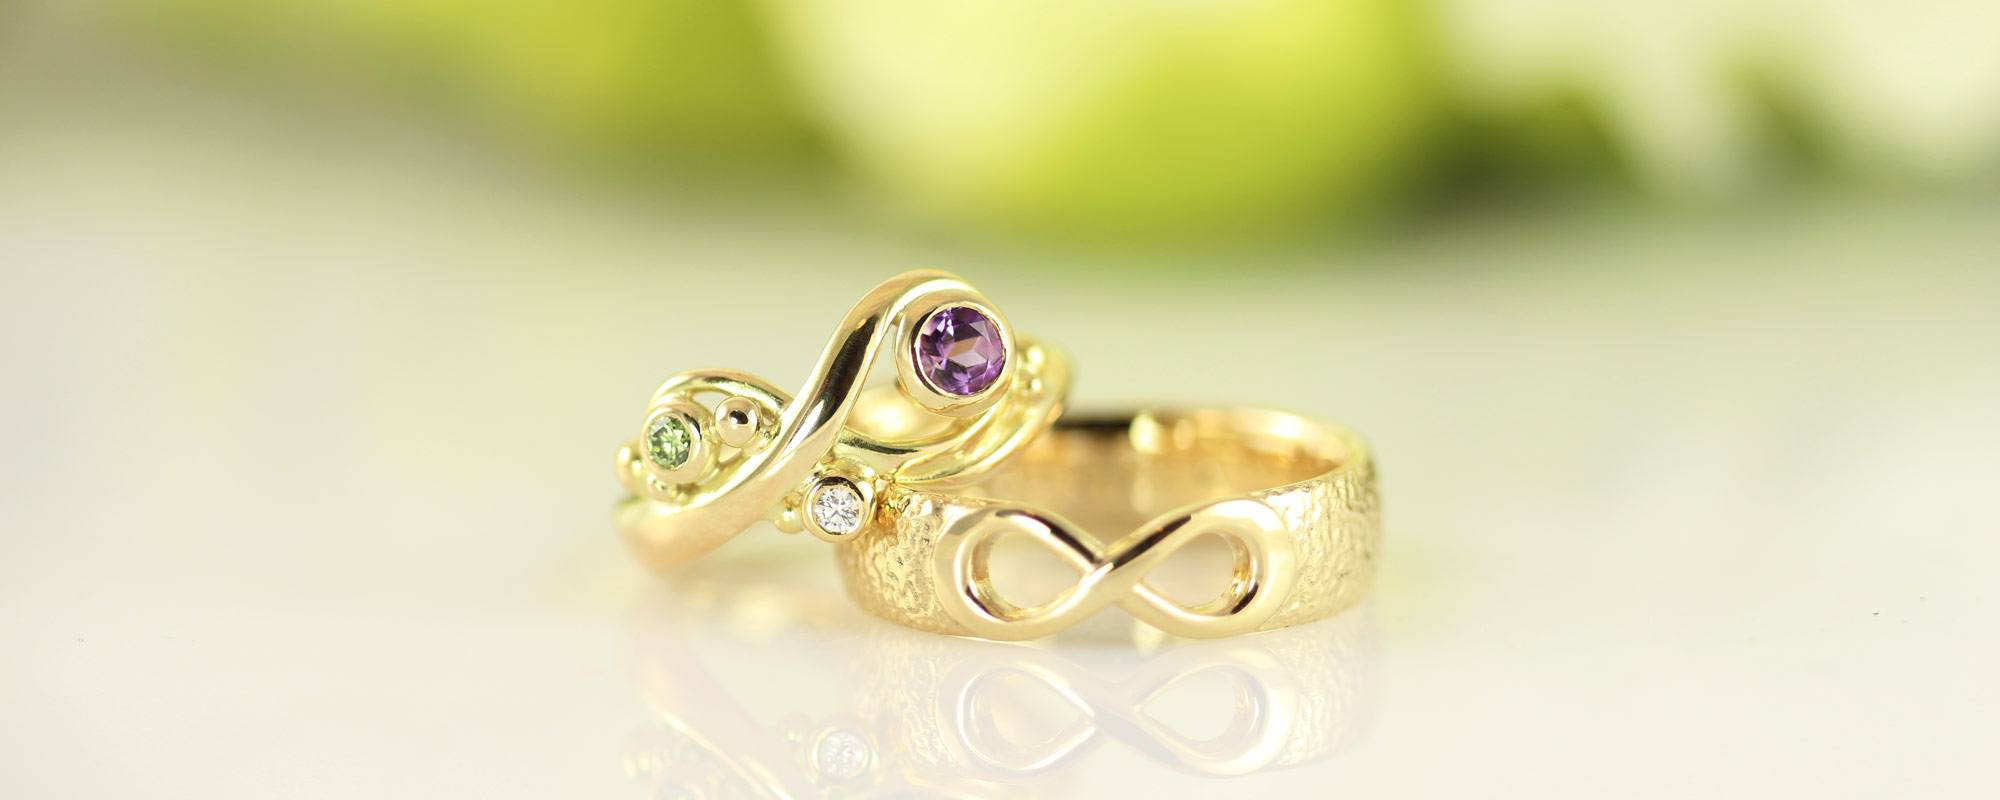 Castens Wedding rings with symbols